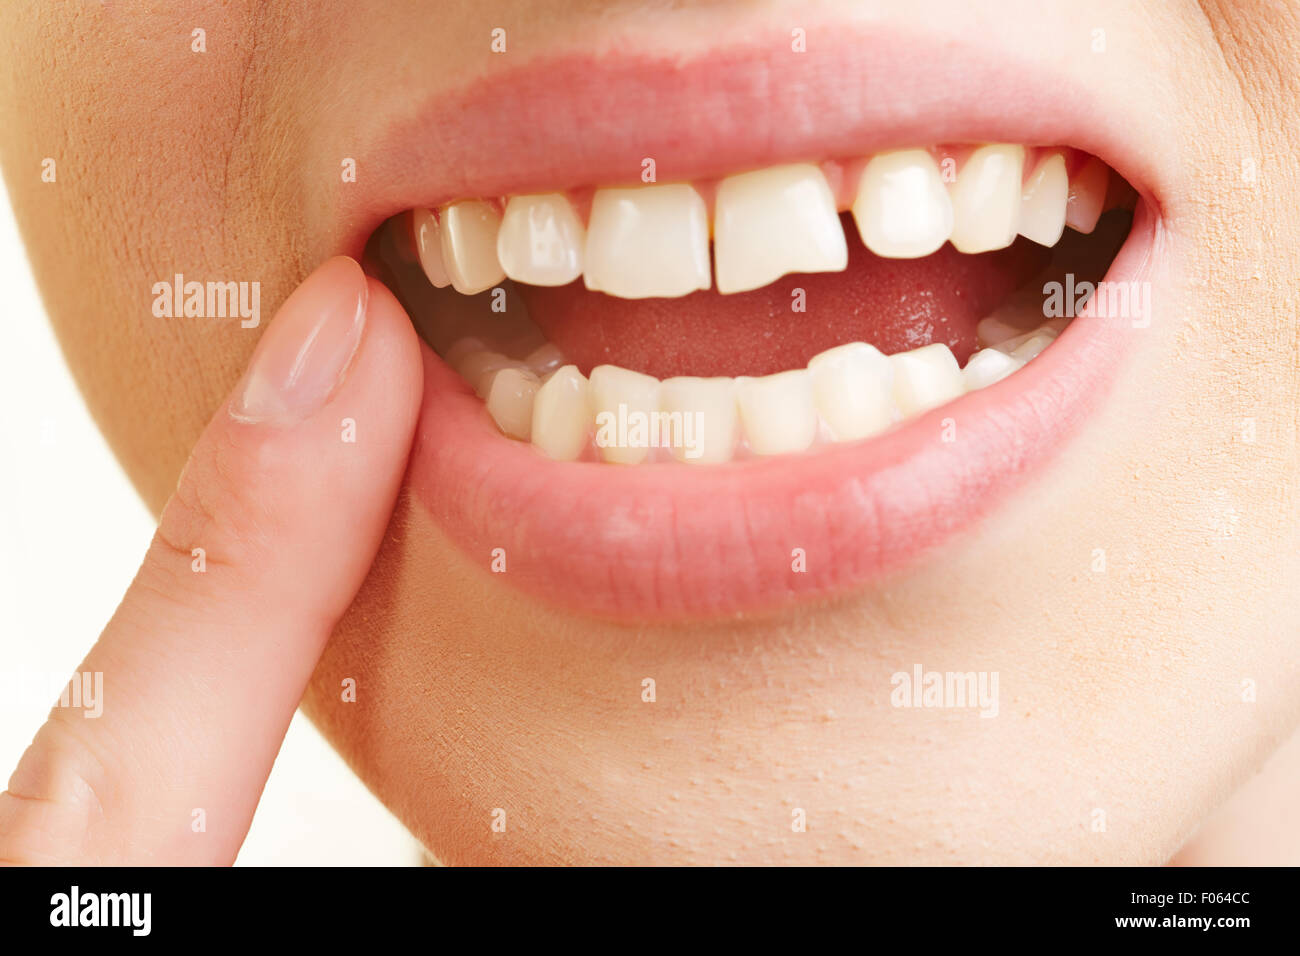 Woman with inflammation of gums in her mouth holding finger on aching tooth - Stock Image